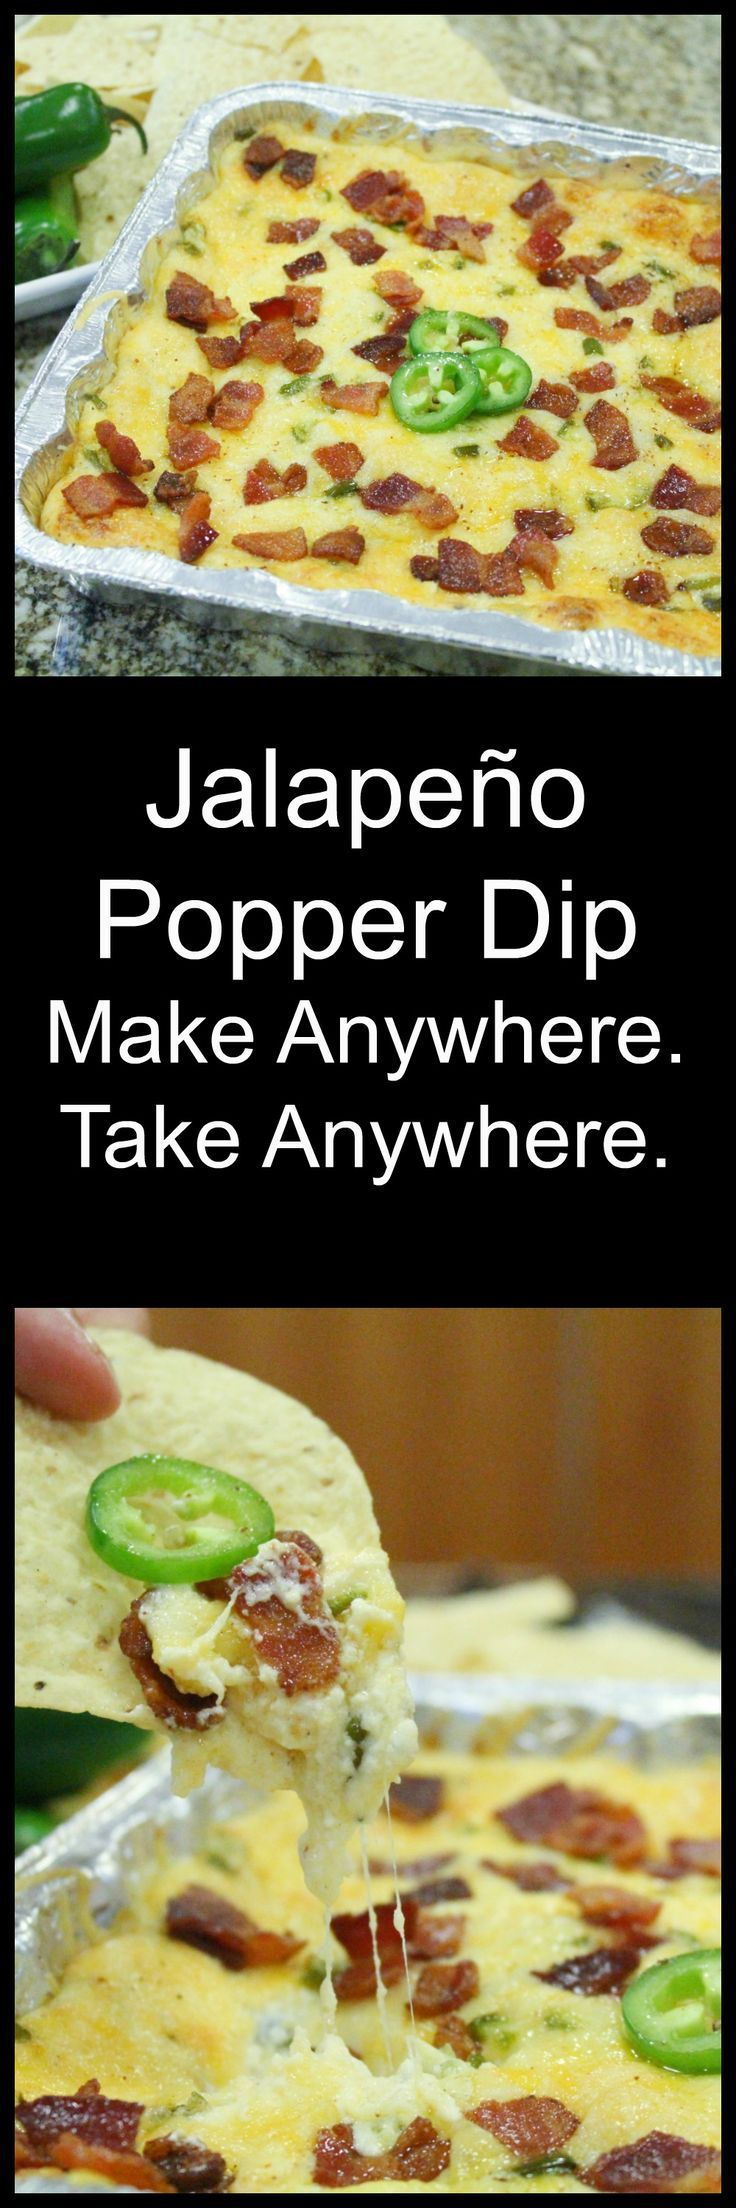 When you need a super easy make anywhere take anywhere appetizer that will please everyone! This Bacon Jalapeno Popper Dip is your answer!